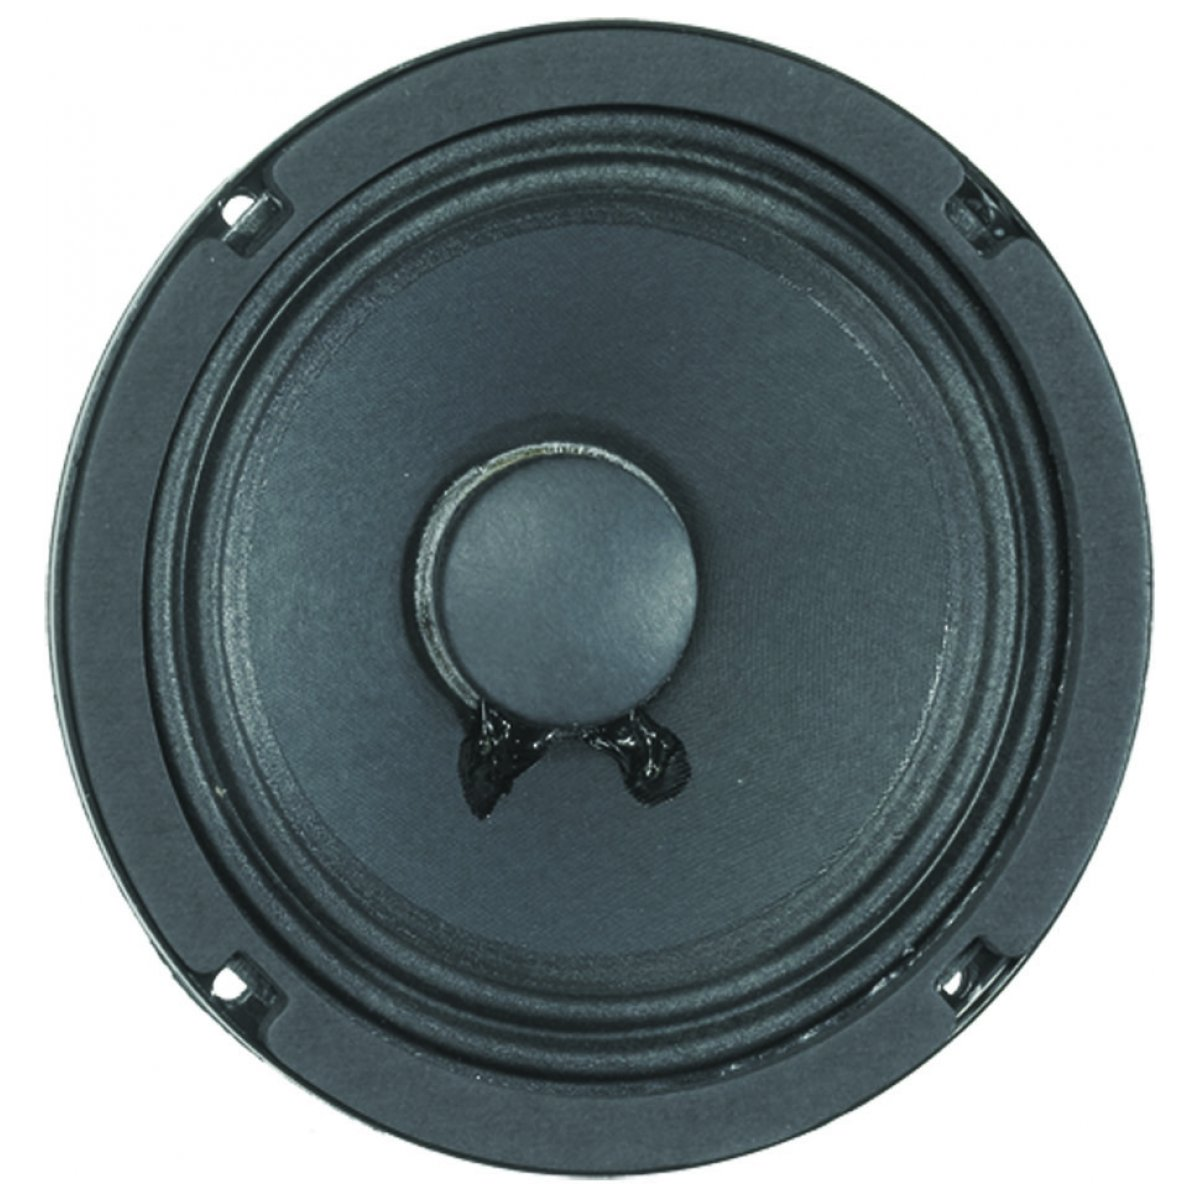 eminence alpha 6 a 6 speaker 100 w 8 ohms g o nik. Black Bedroom Furniture Sets. Home Design Ideas